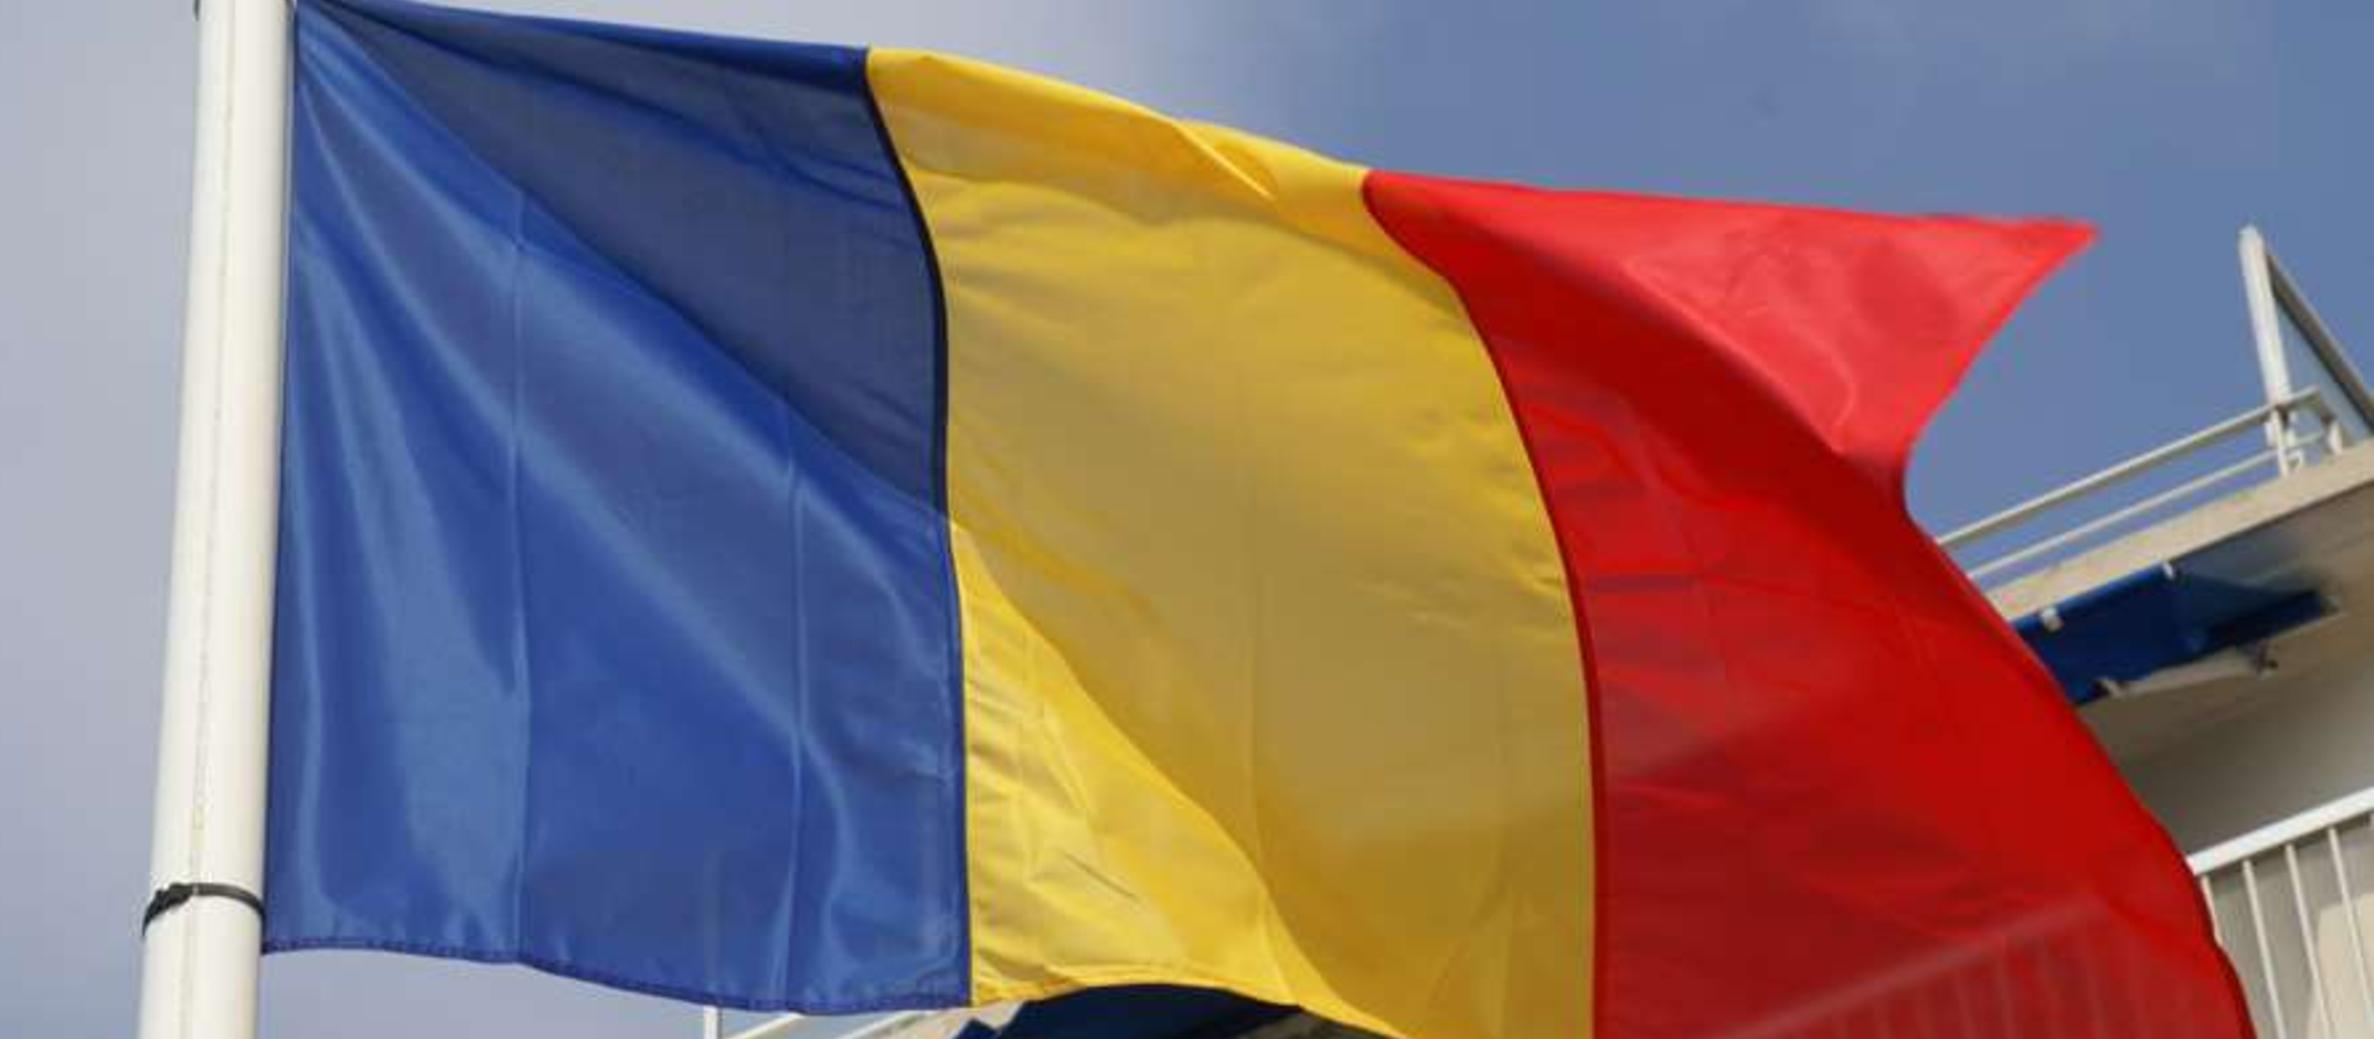 Romania makes Holocaust denial illegal